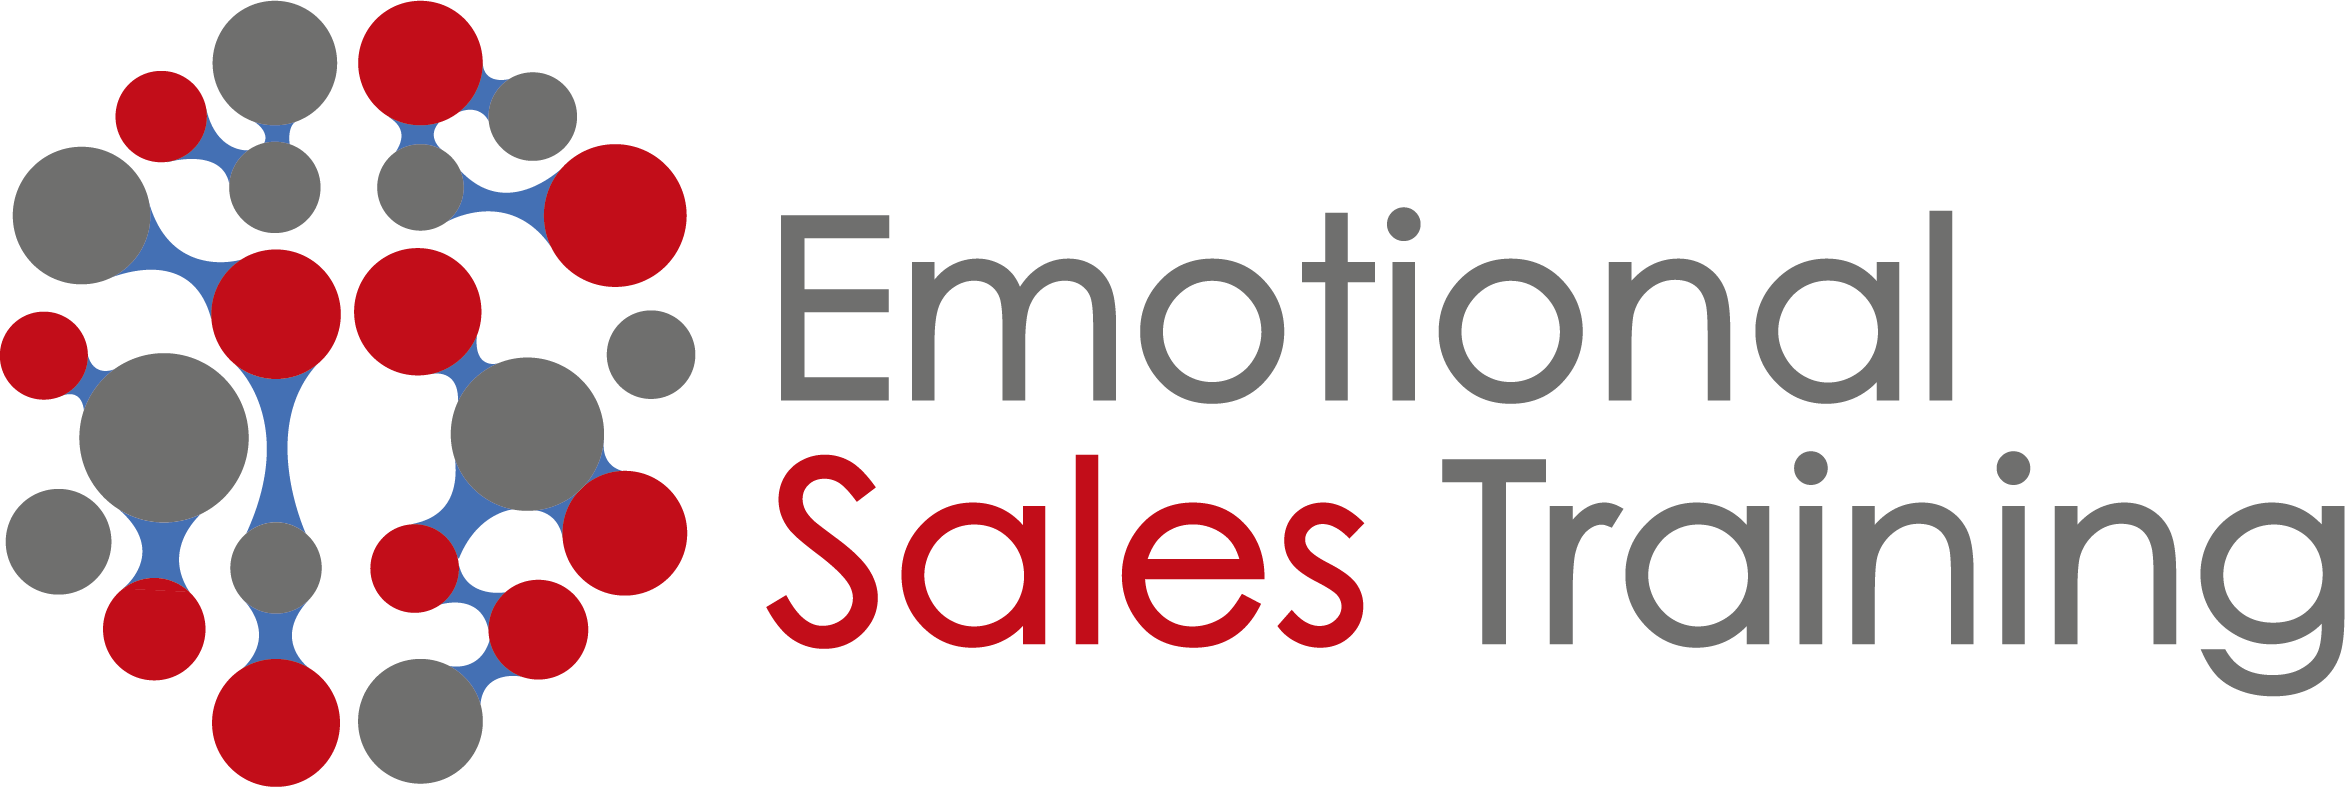 Emotional Sales Training